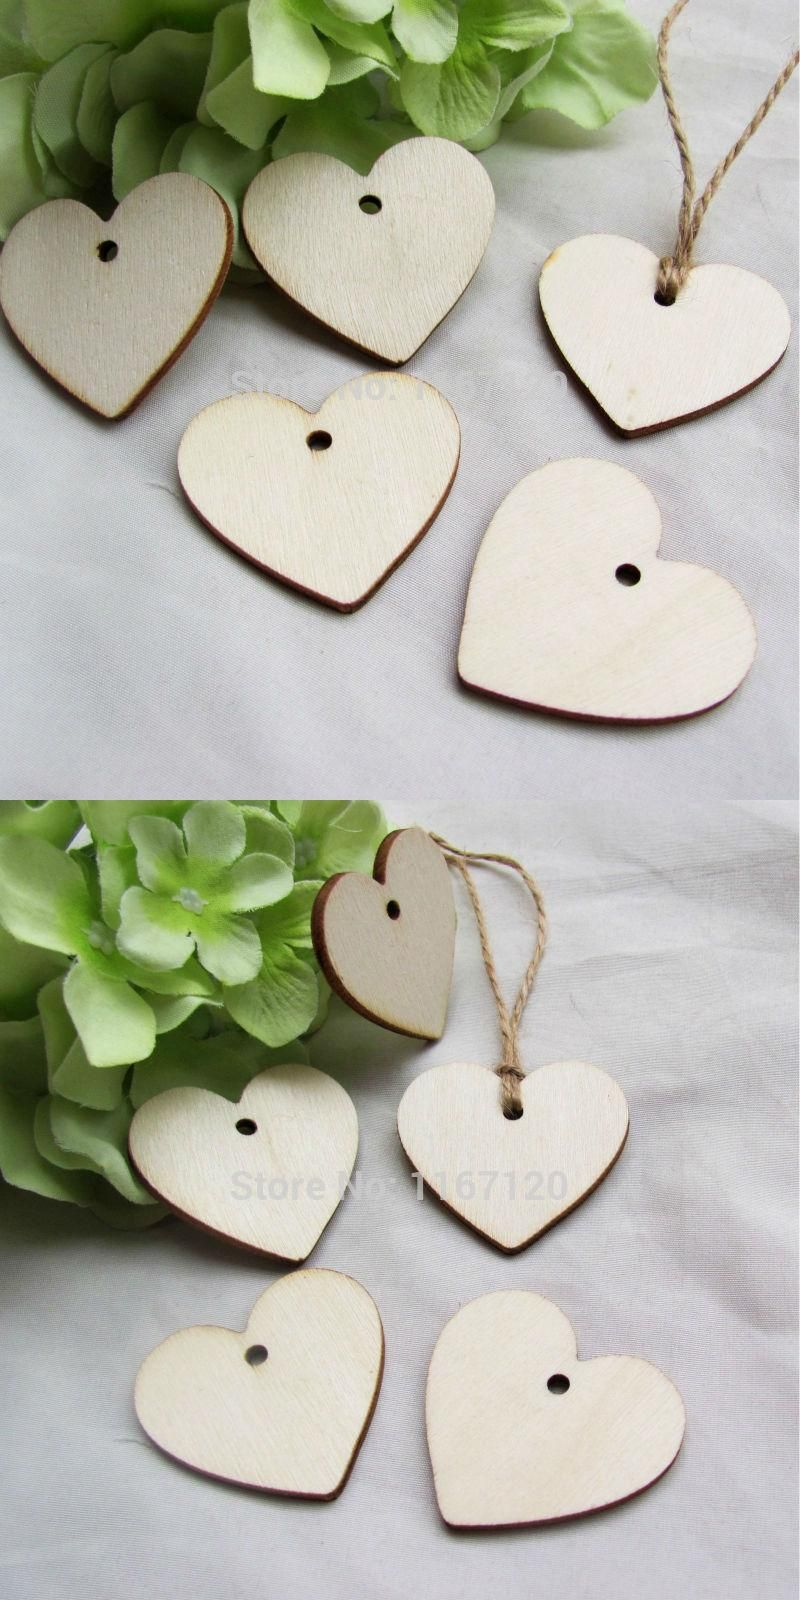 Pcs wood wooden heart tags wedding card wish tree gift tags with